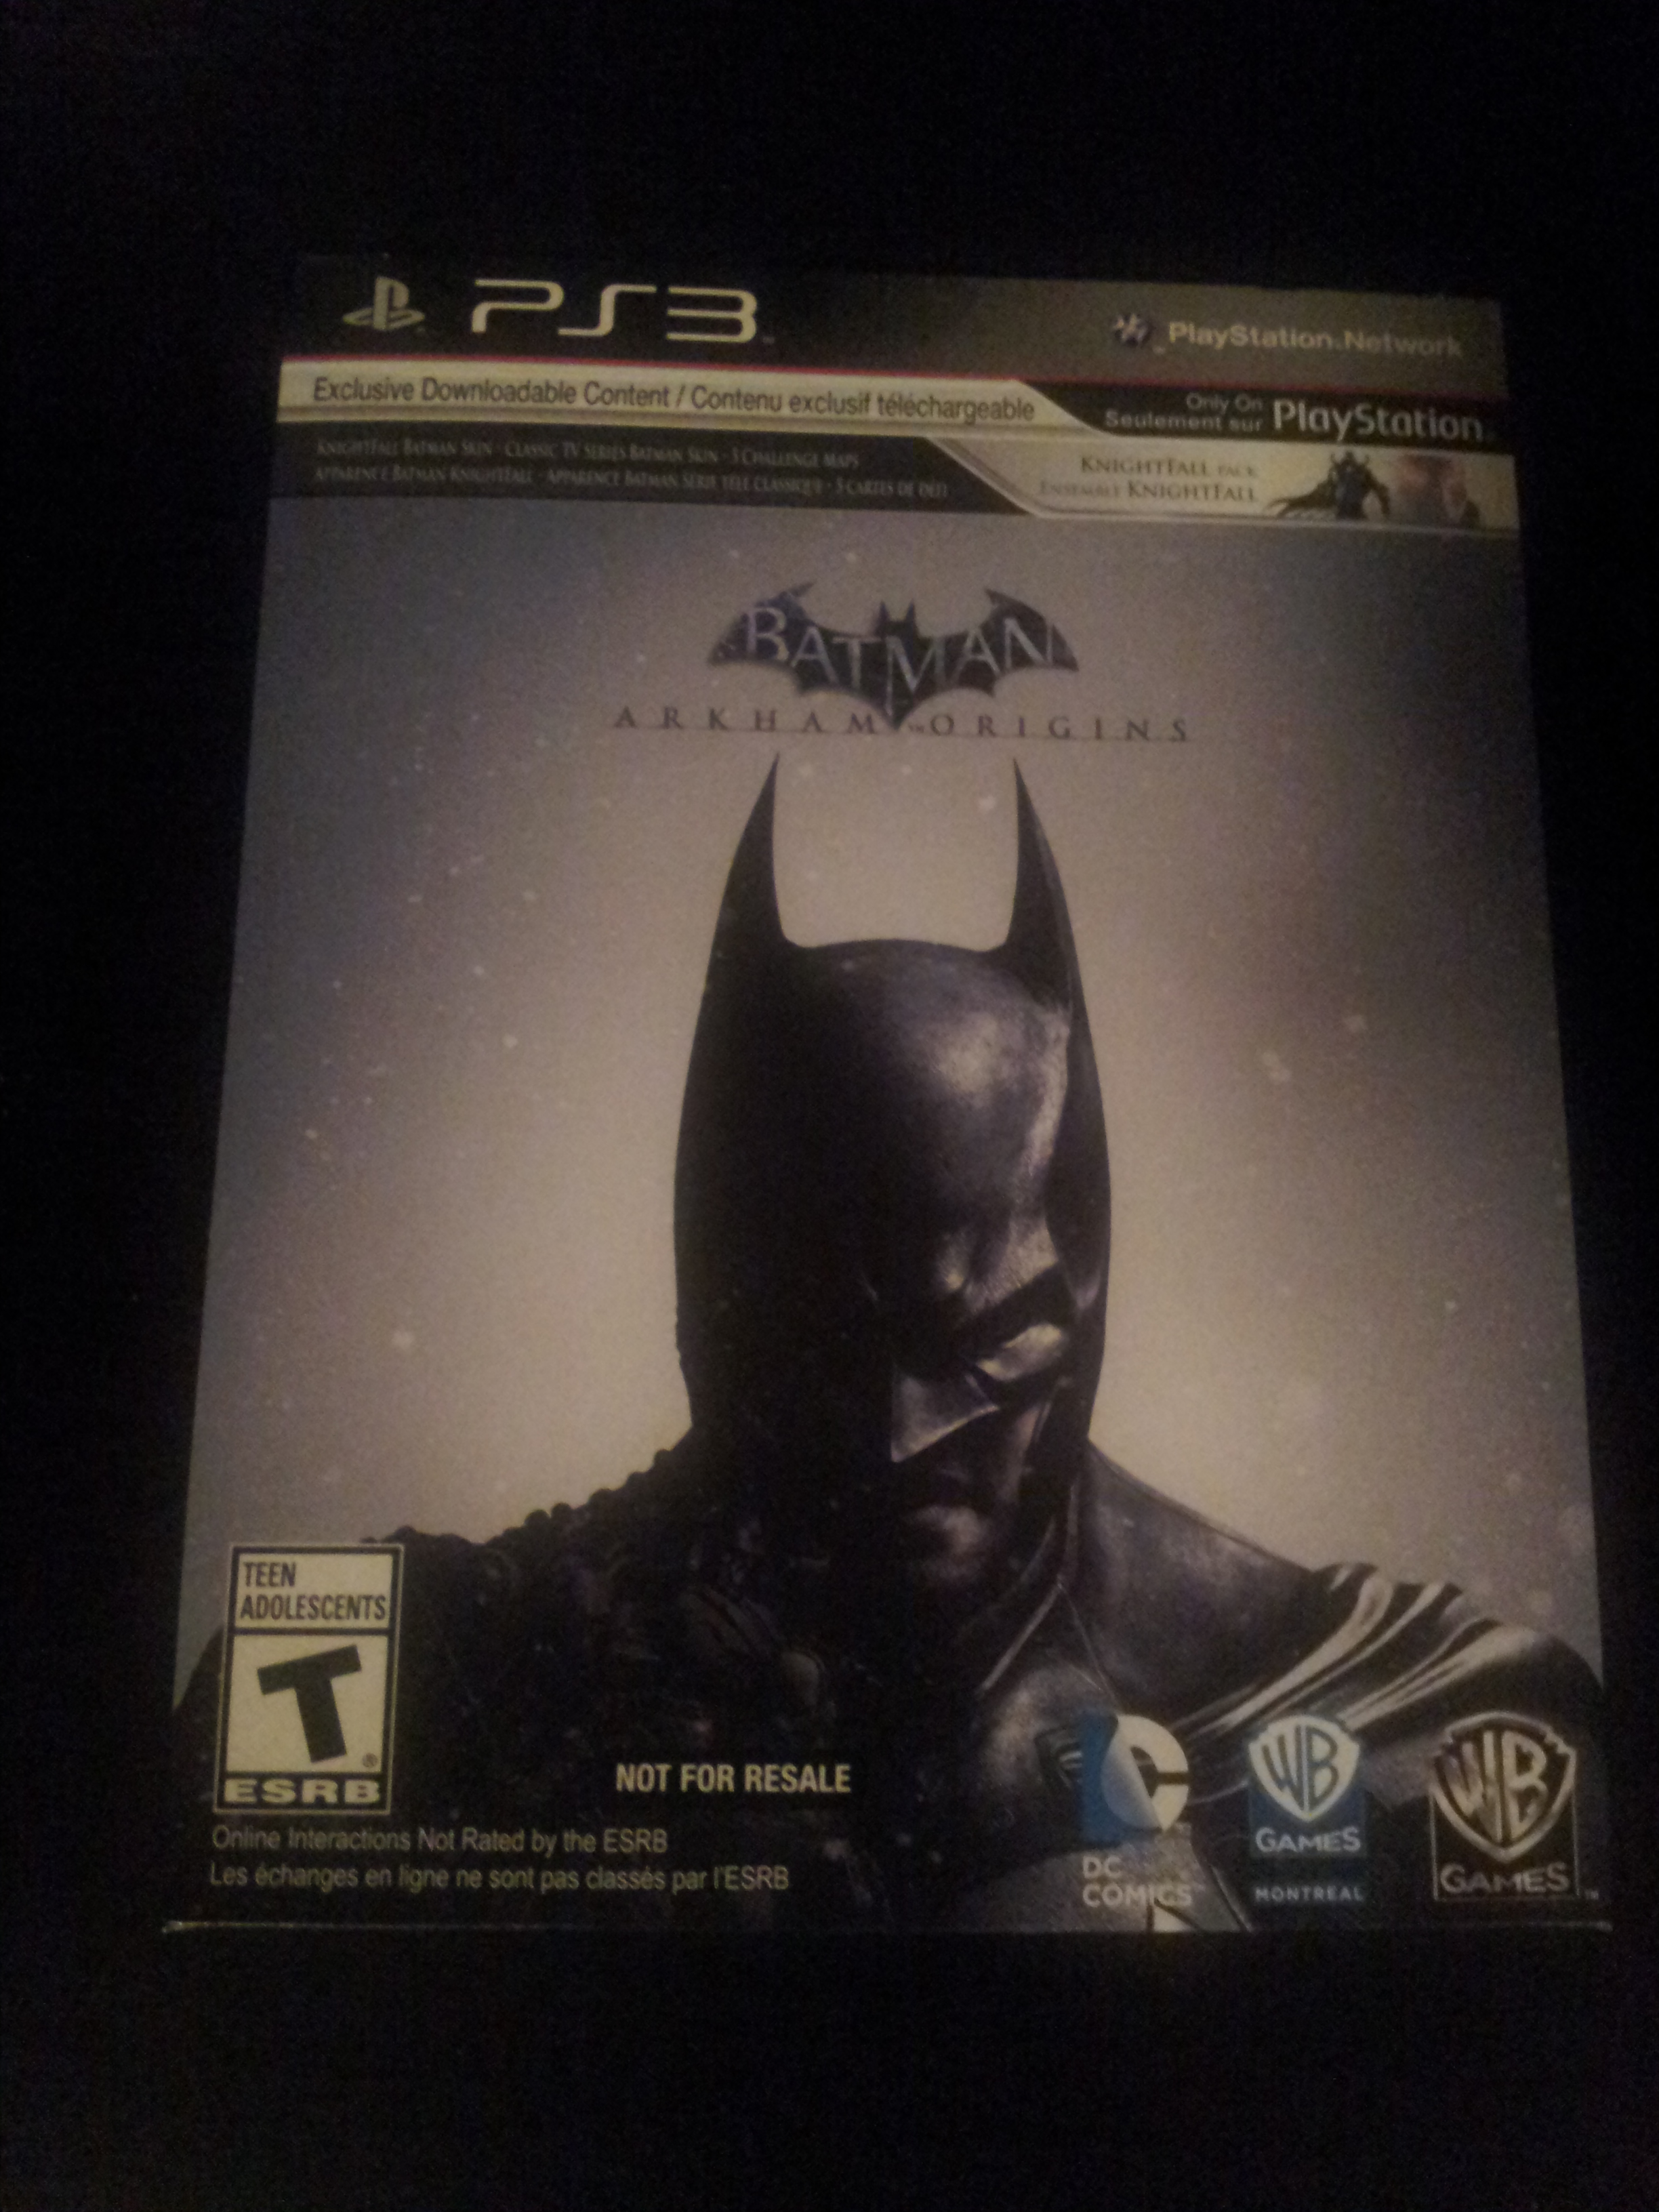 xerlic  with batman last origins arkham shipped bought packaged what prevent they case thats looks reselling guess manual want spoilers like picture looking pretty much just came that holiday bundle comes paper sleeve game selling tracking instruction